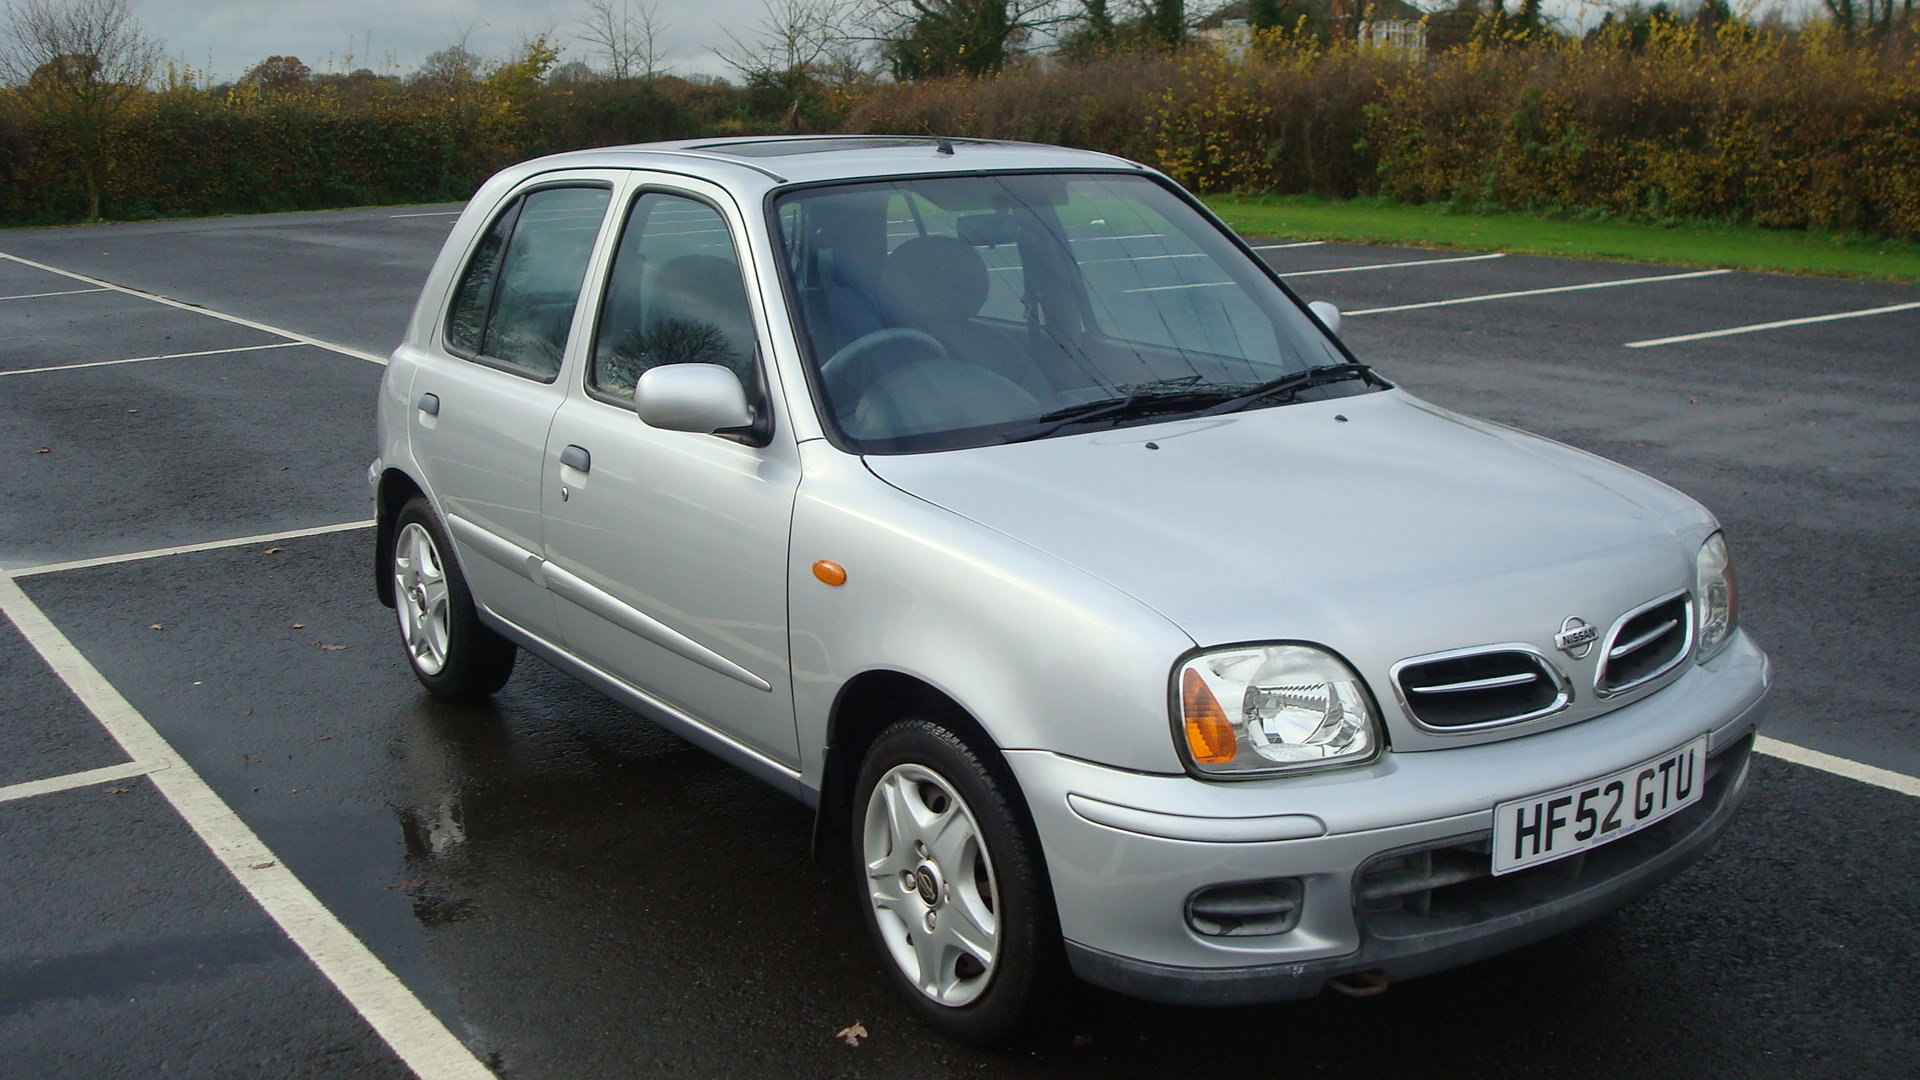 2002 Nissan Micra 1.0 Tempest Auto SOLD (picture 1 of 6)